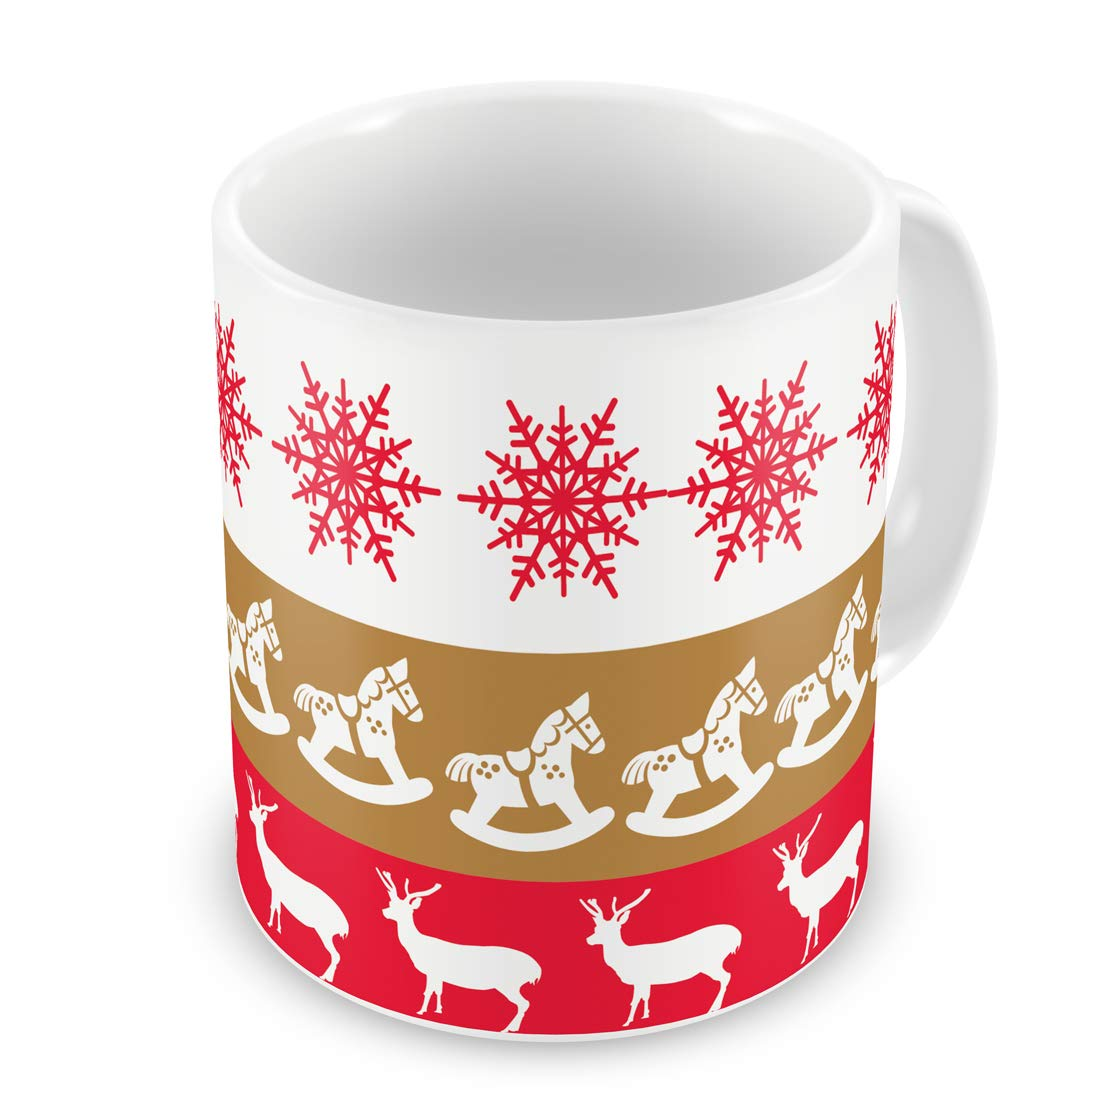 Buy Indigifts Christmas Gifts Nordic Pattern With Reindeers And Snowflakes Printed Multi Coffee Mug 330 Ml Christmas Mugs Xmas Decorations Christmas Decor Xmas Mugs Quirky Mugs Online At Low Prices In